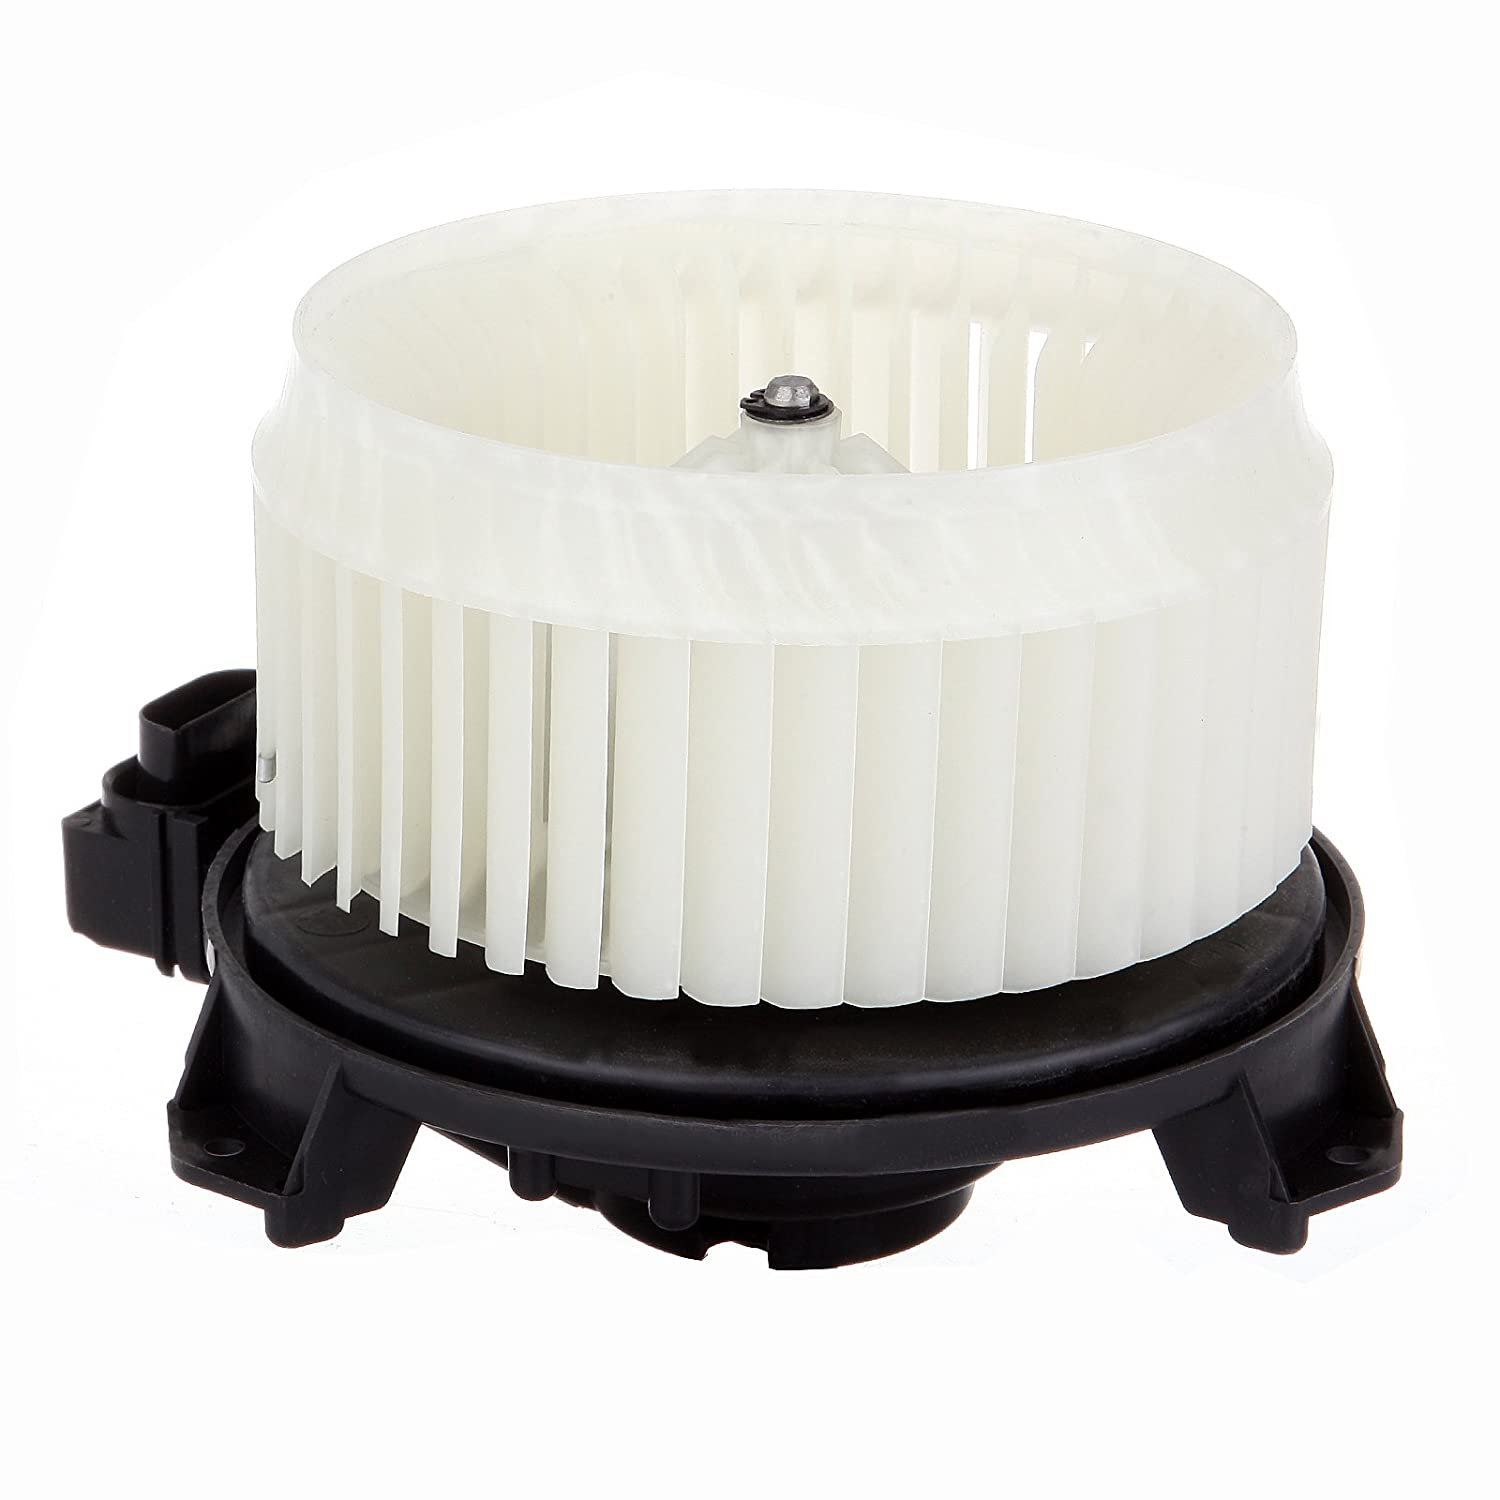 ABS plastic Heater Blower Motor w//Fan Cage ECCPP for 2008-2014 Scion xD 2007-2012 Toyota Yaris